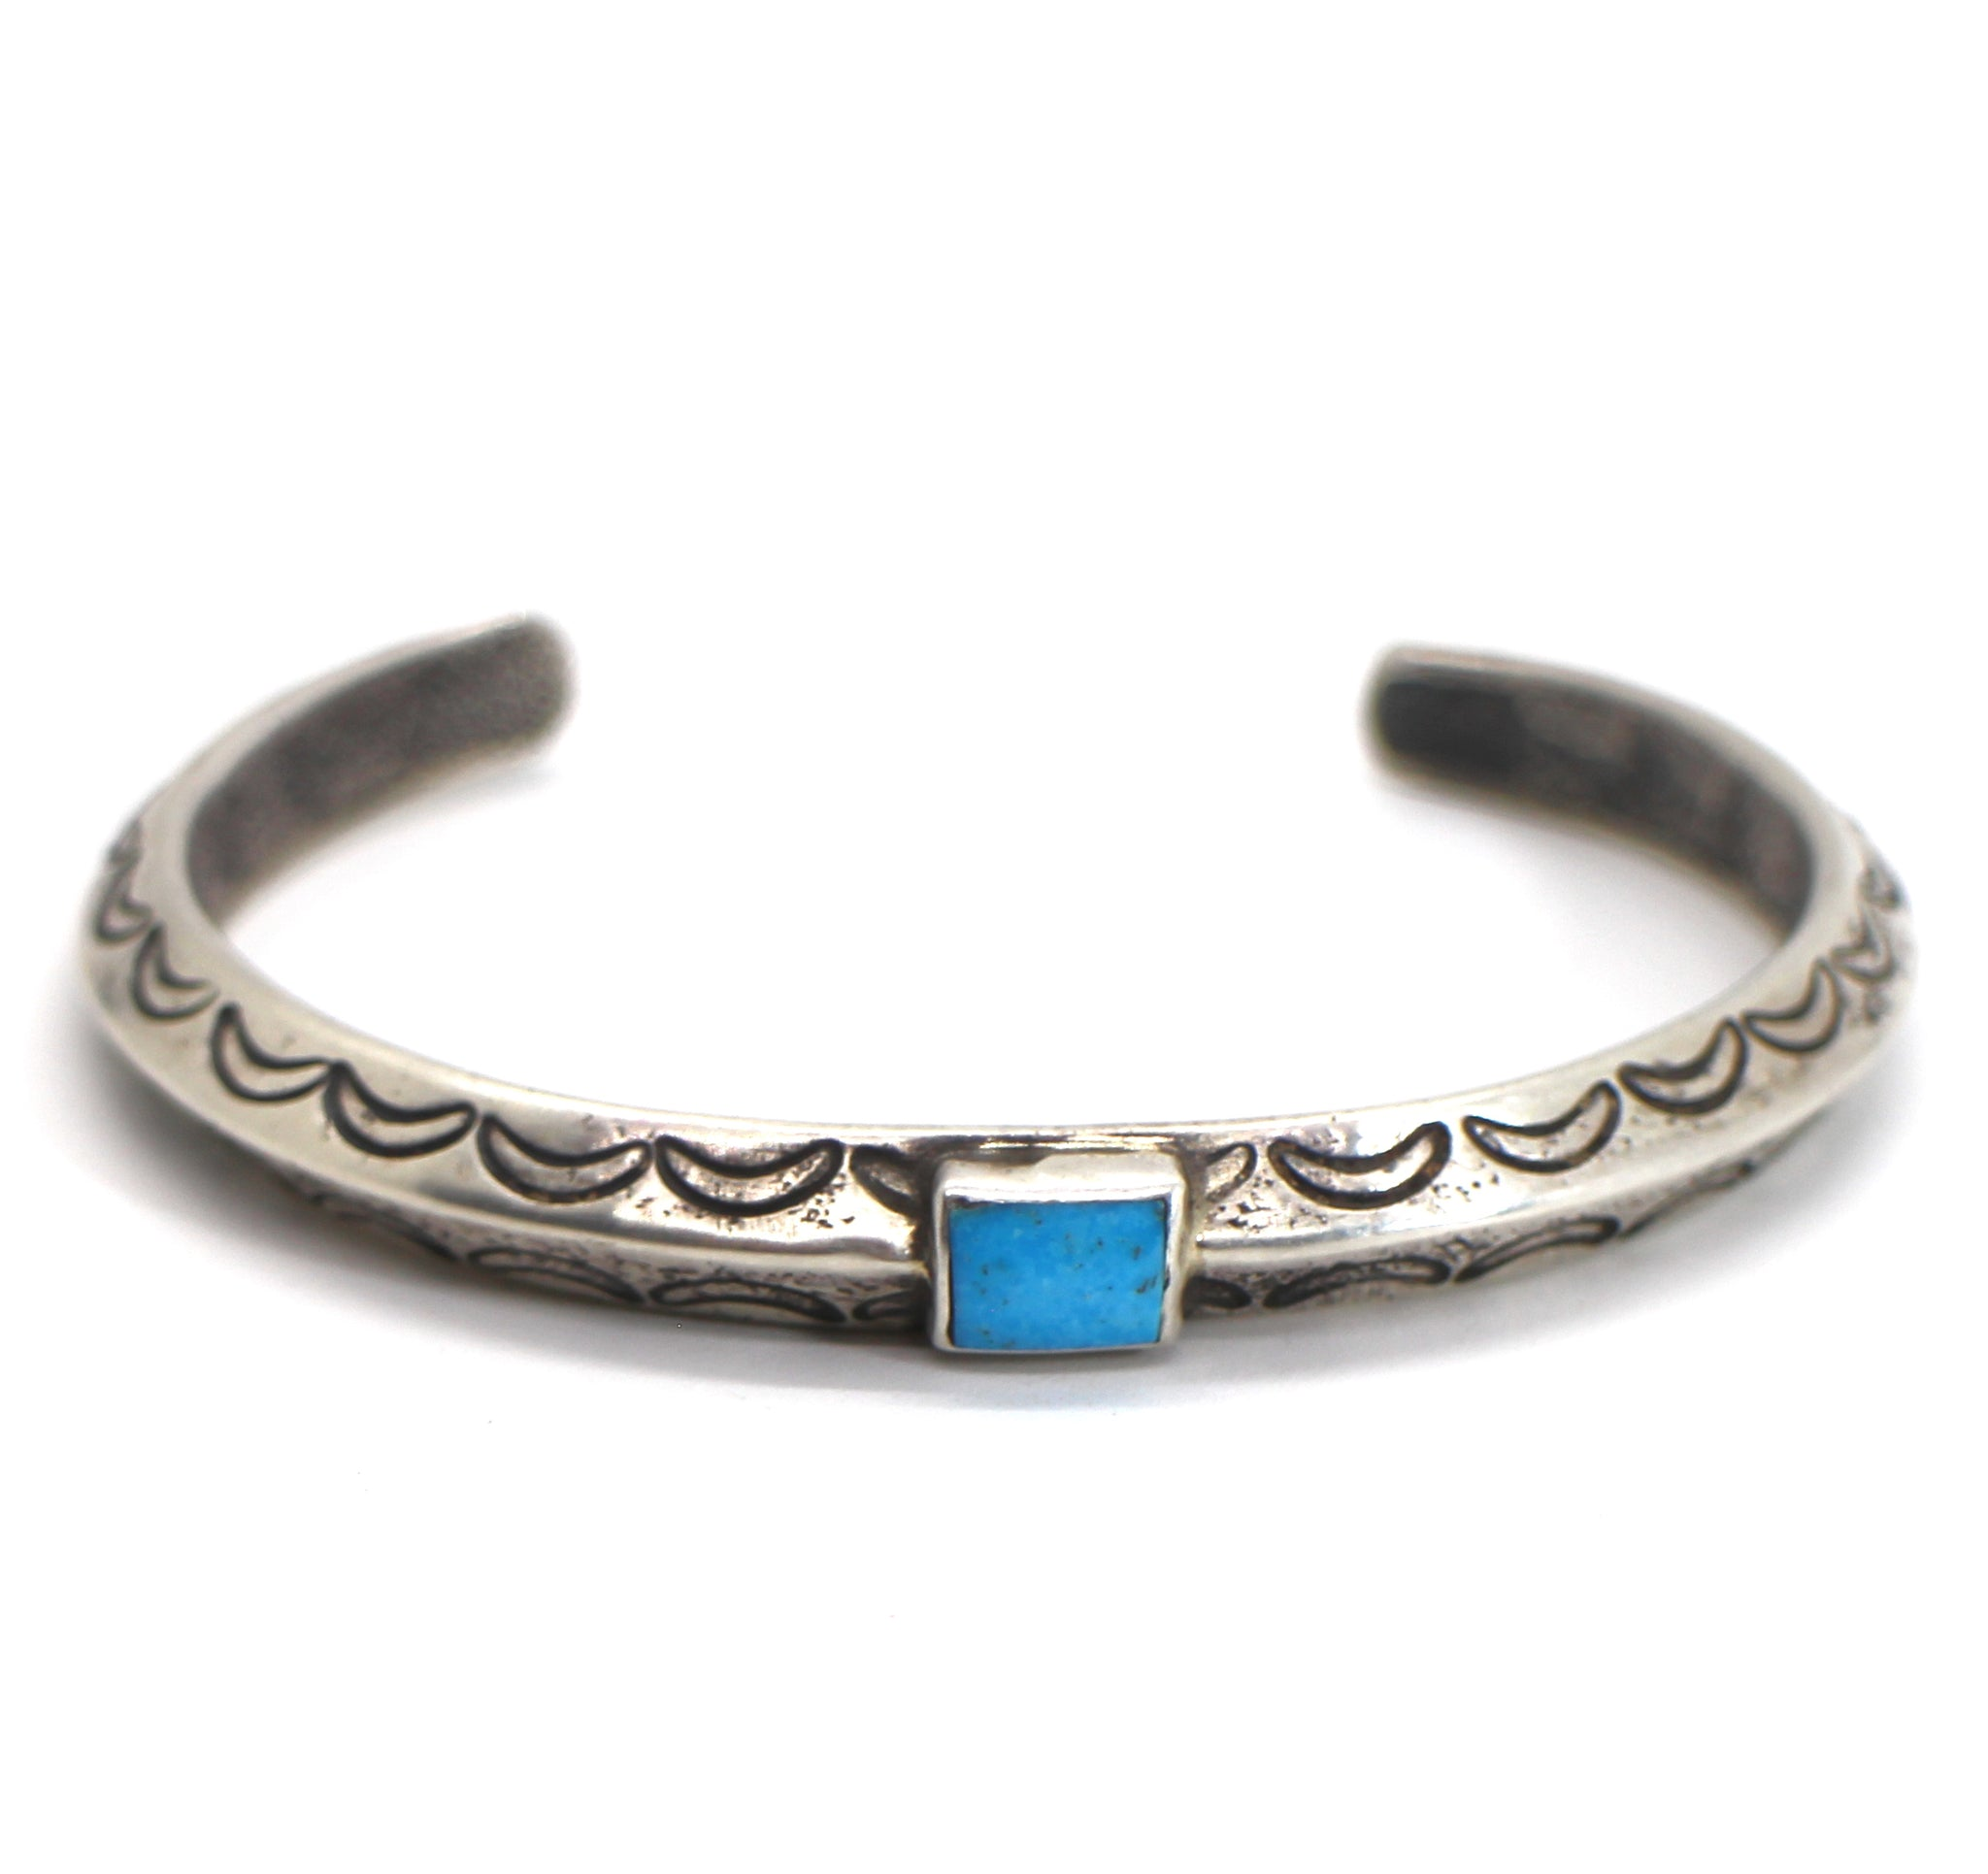 Jesse Robbins Triangle Bracelet with Blue Gem